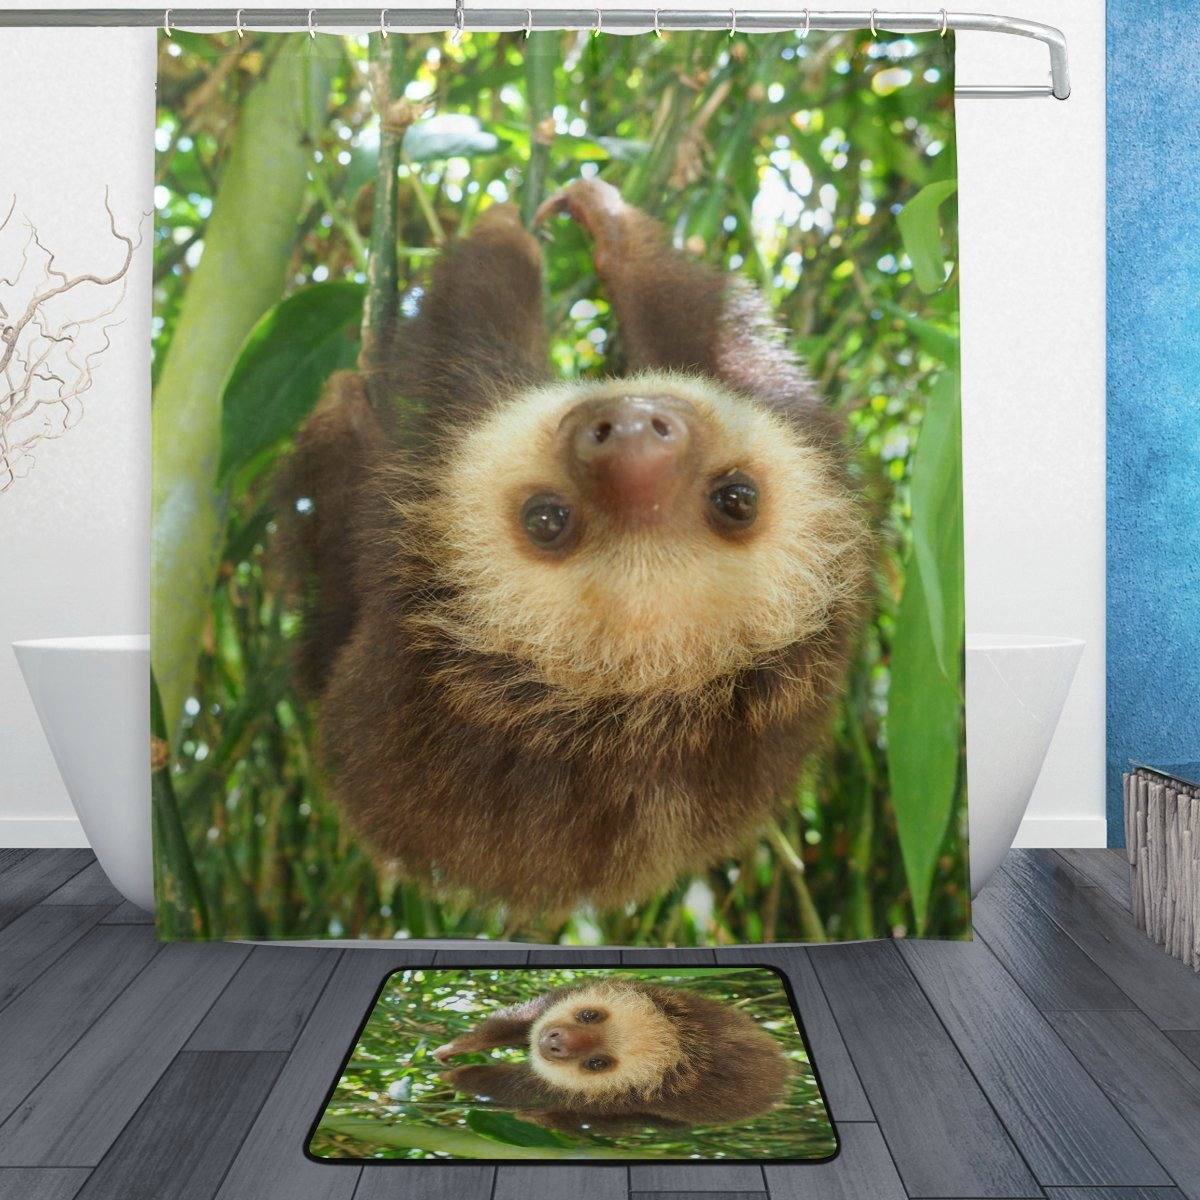 ALAZA Set of 2 Cute Animal Sloth 60 X 72 Inches Shower Curtain and Mat Set, Baby Sloth on Tree Branches Waterproof Fabric Bathroom Curtain and Rug Set with Hooks